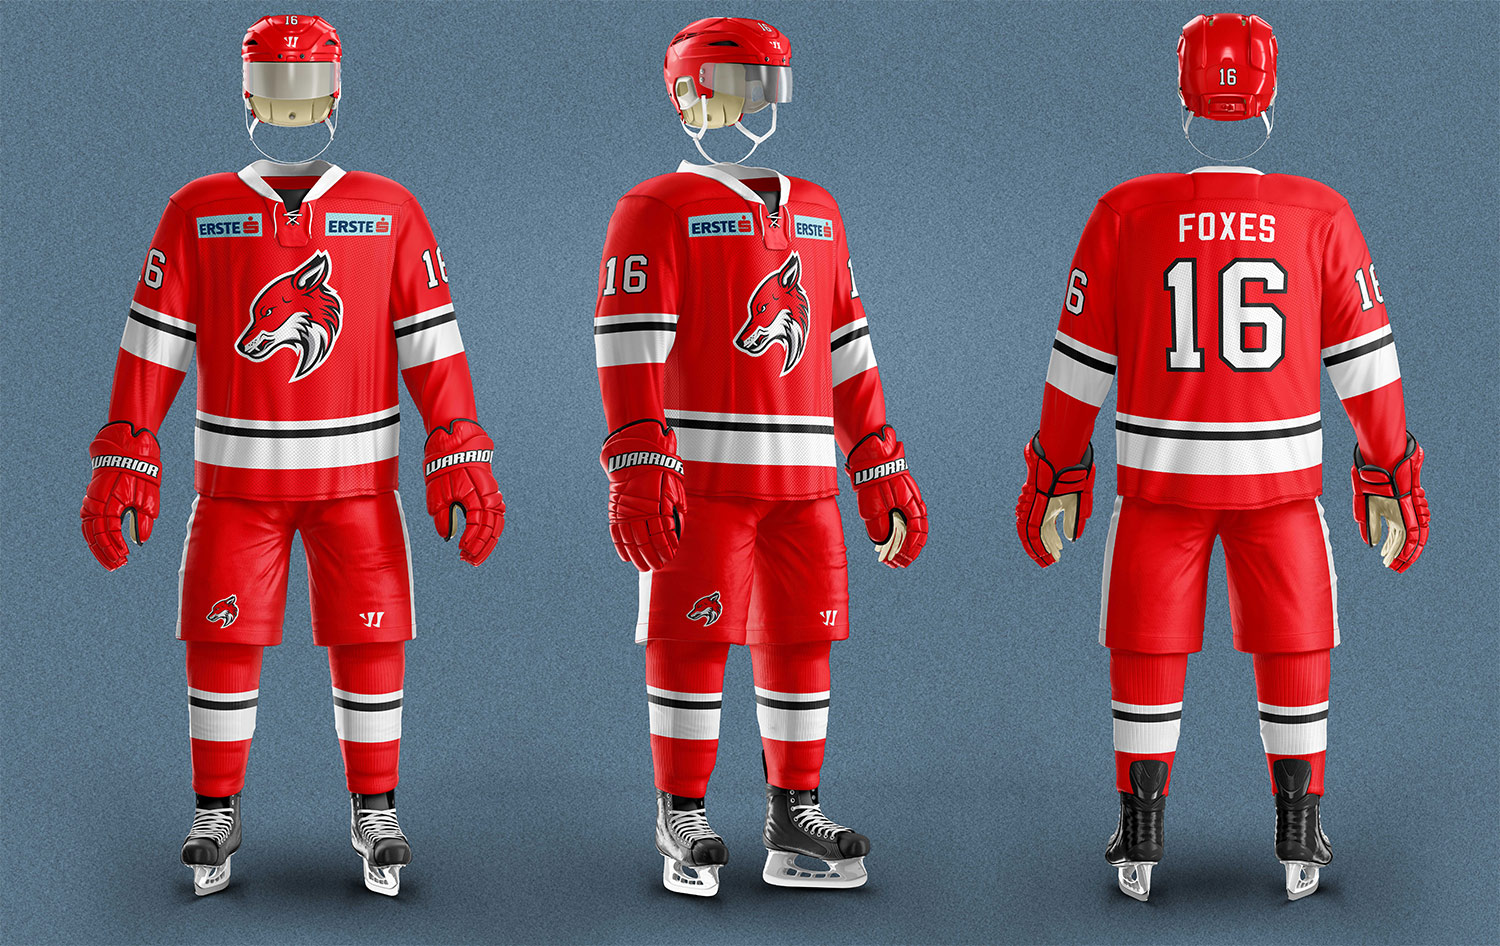 HCB_Foxes_Full-Player-Red.jpg